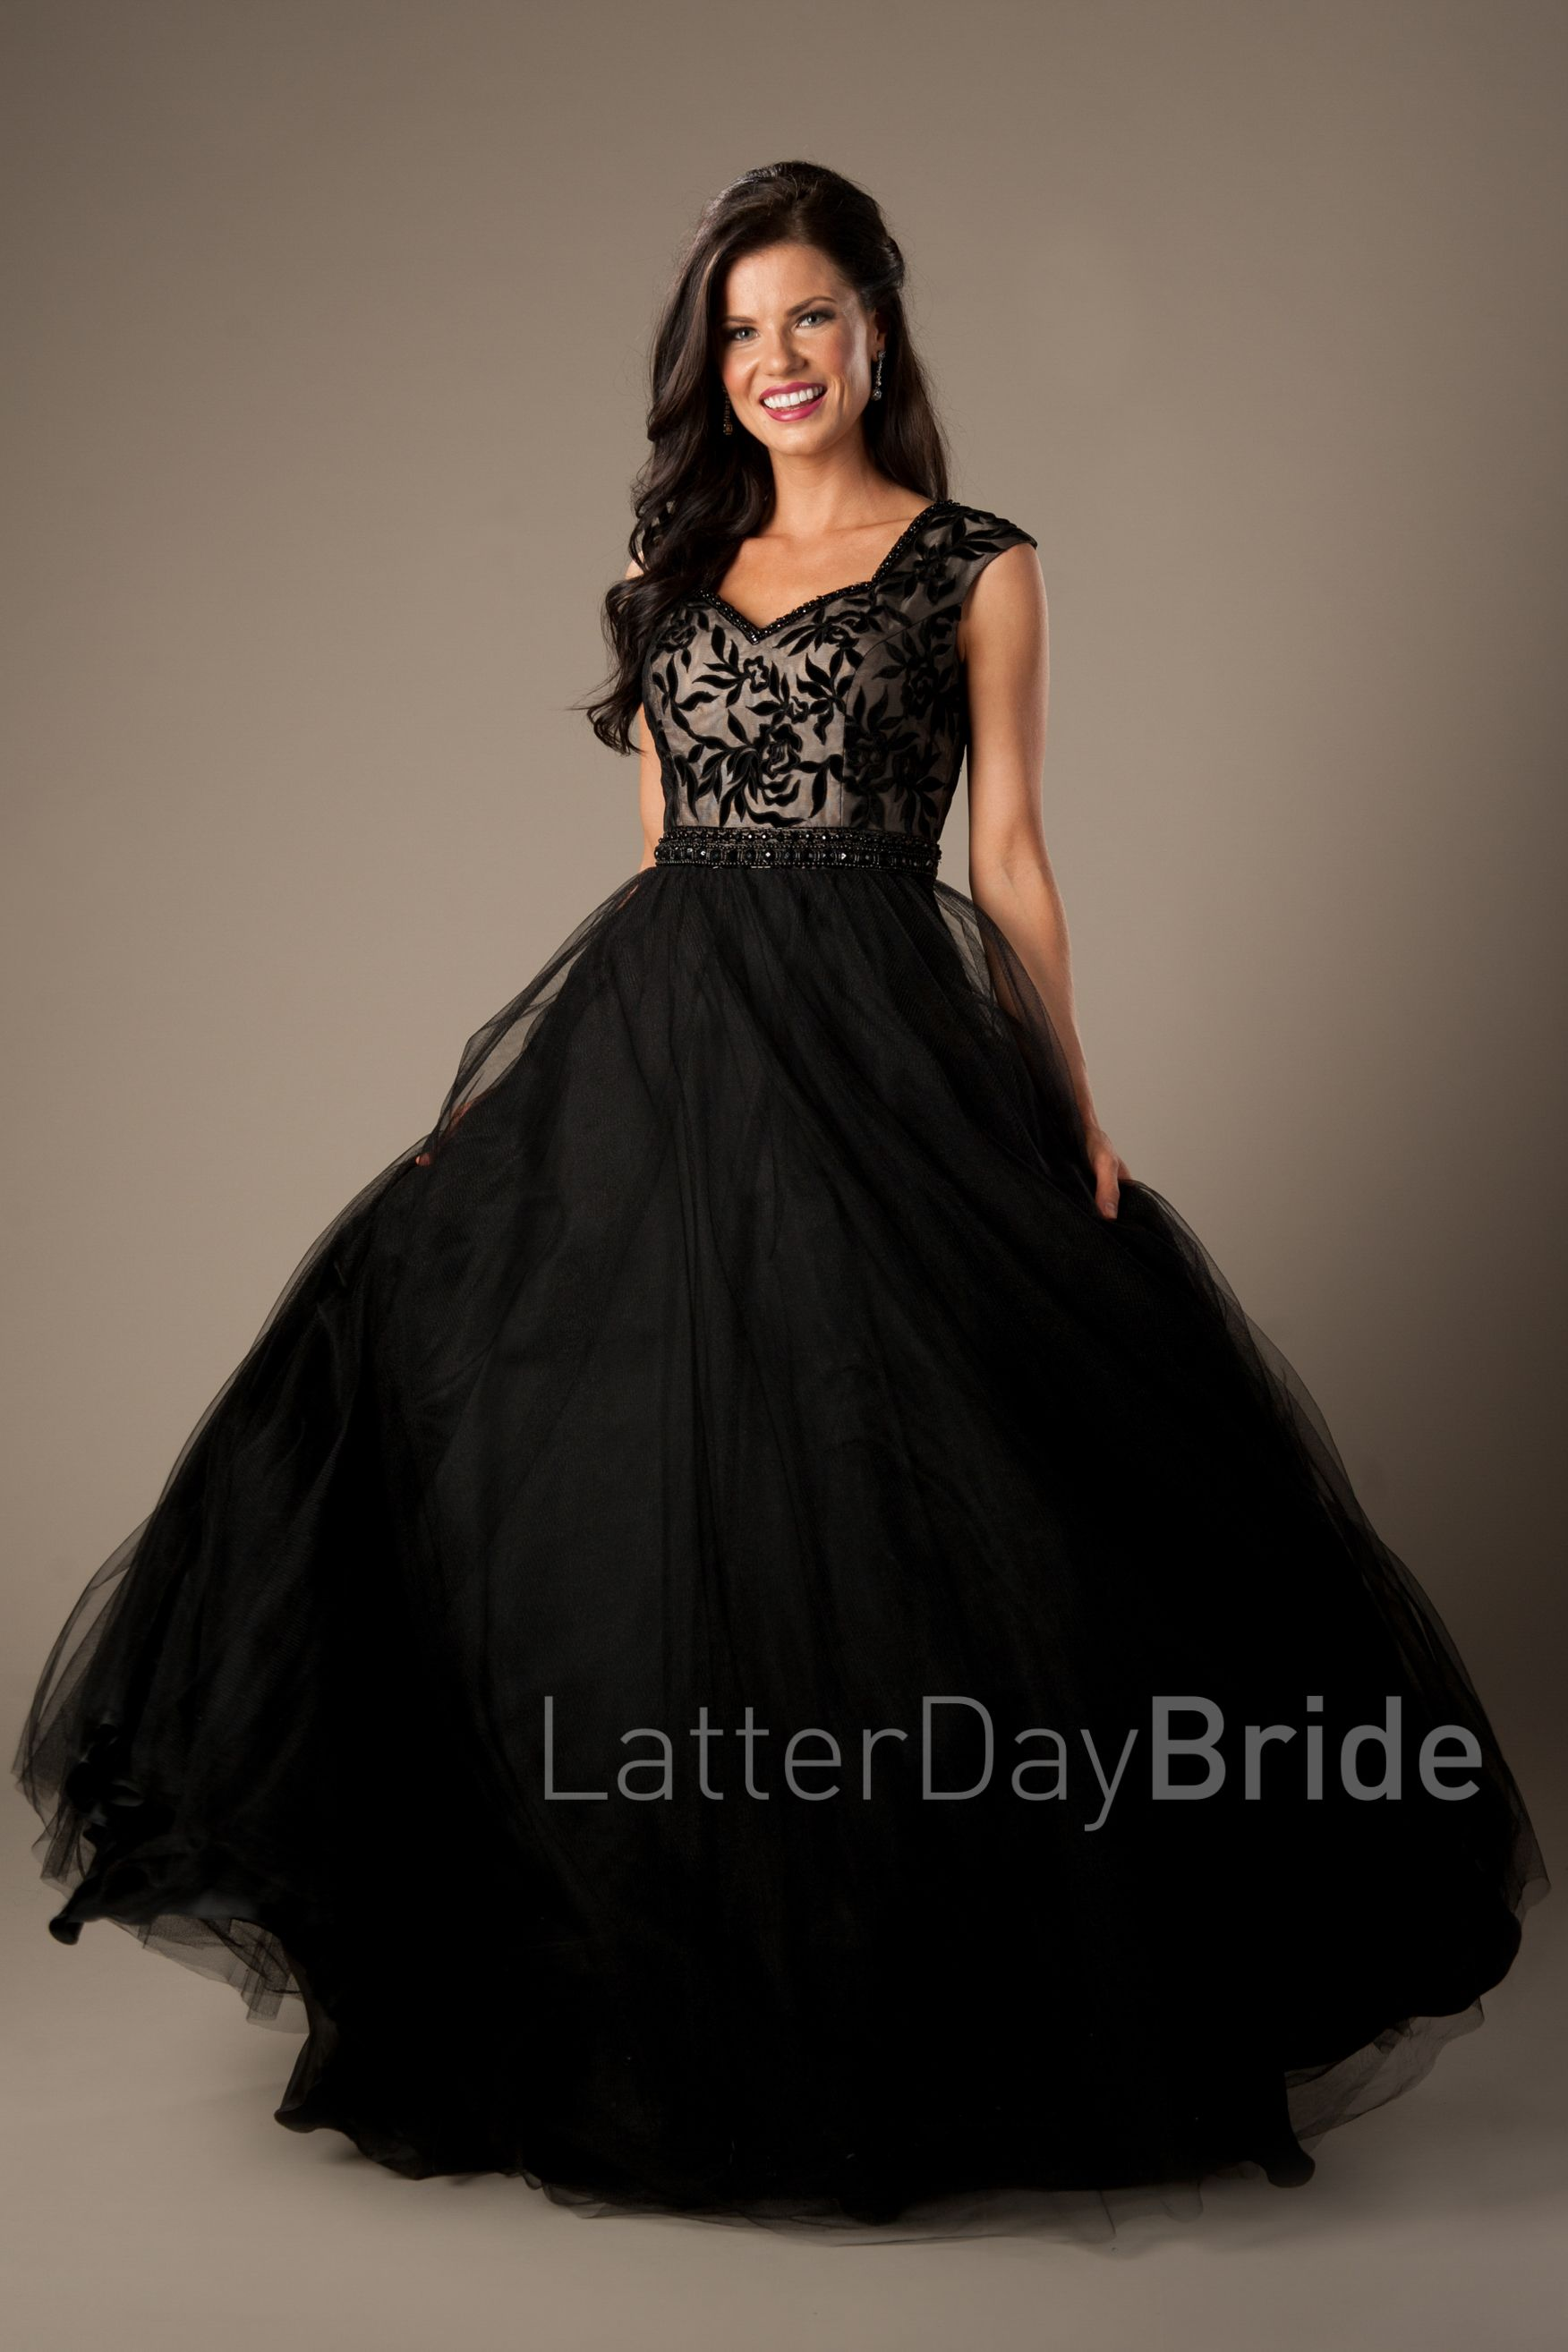 Isabella Modest Black Prom Dress By Latterdaybride Prom This Stunning Modest Ball Gown Features A Flo Prom Dresses Modest Prom Dresses Prom Party Dresses [ 2628 x 1752 Pixel ]